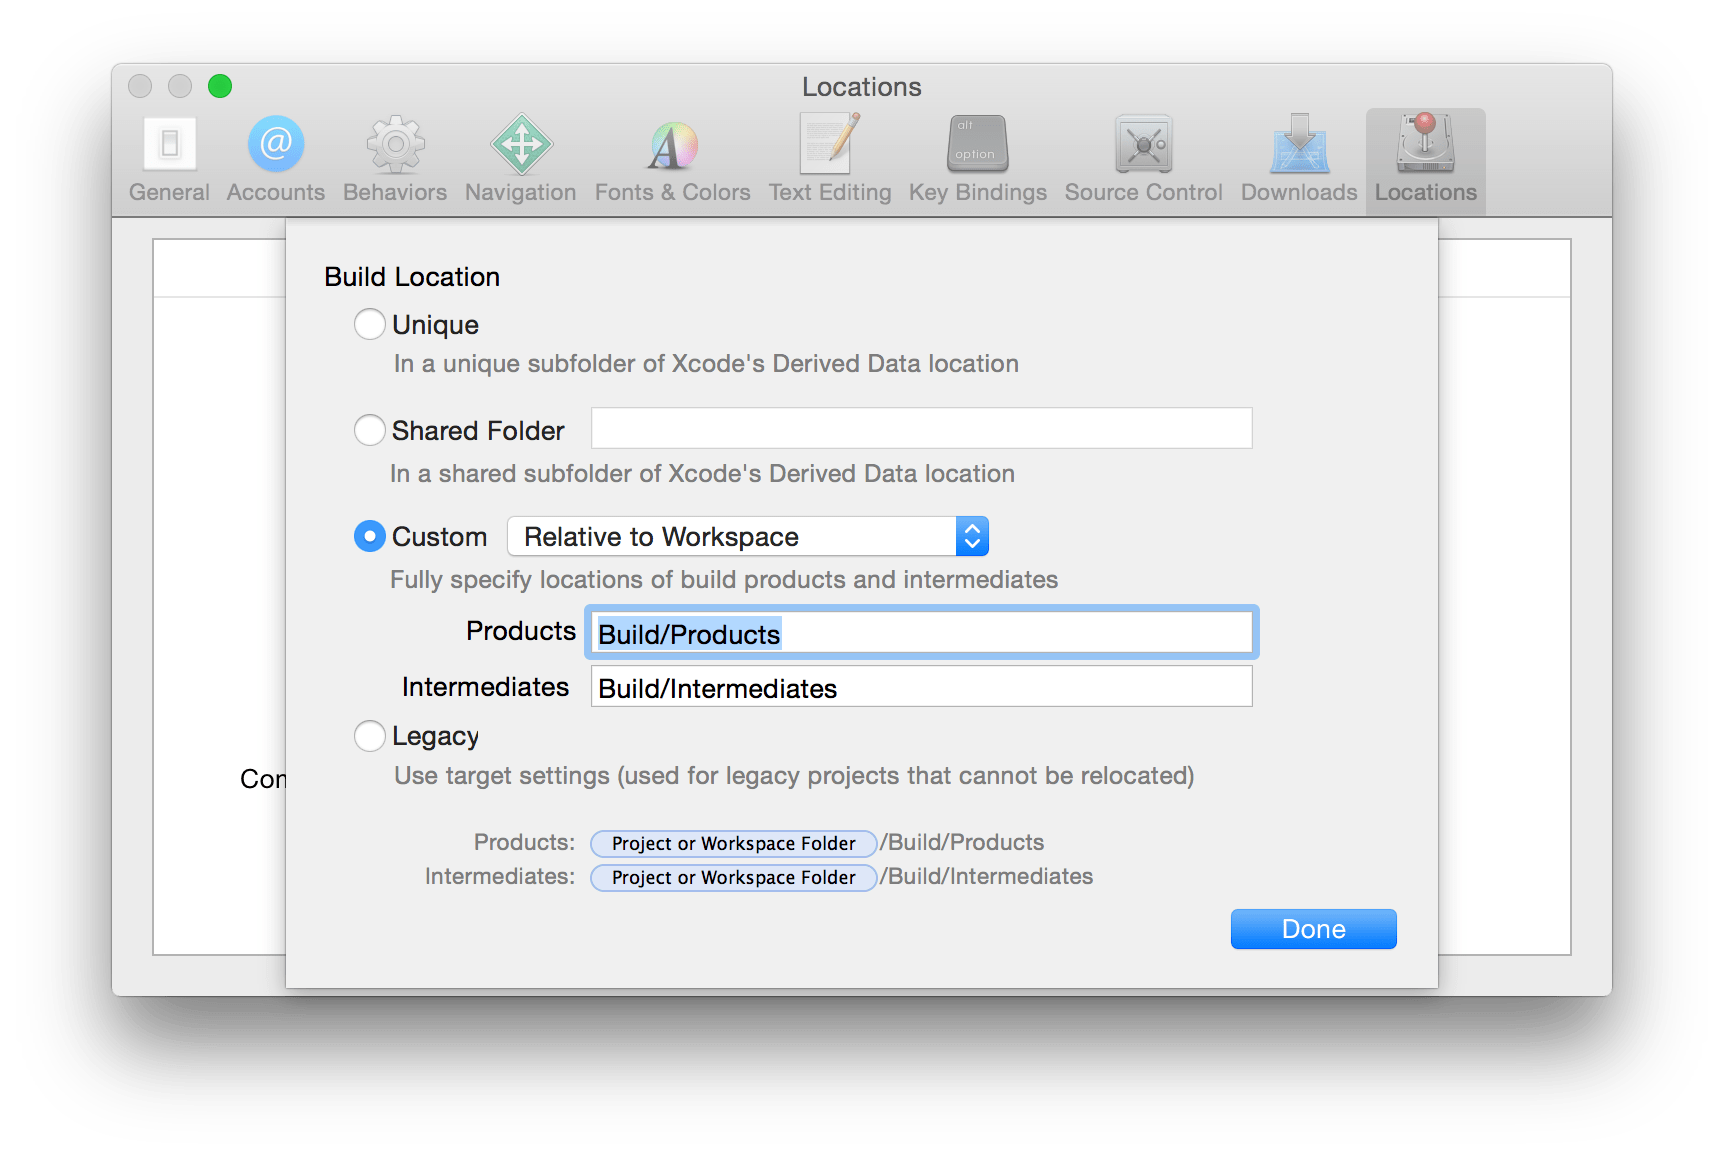 Location Console How Do I Change The Xcode Build Location To Legacy Using The